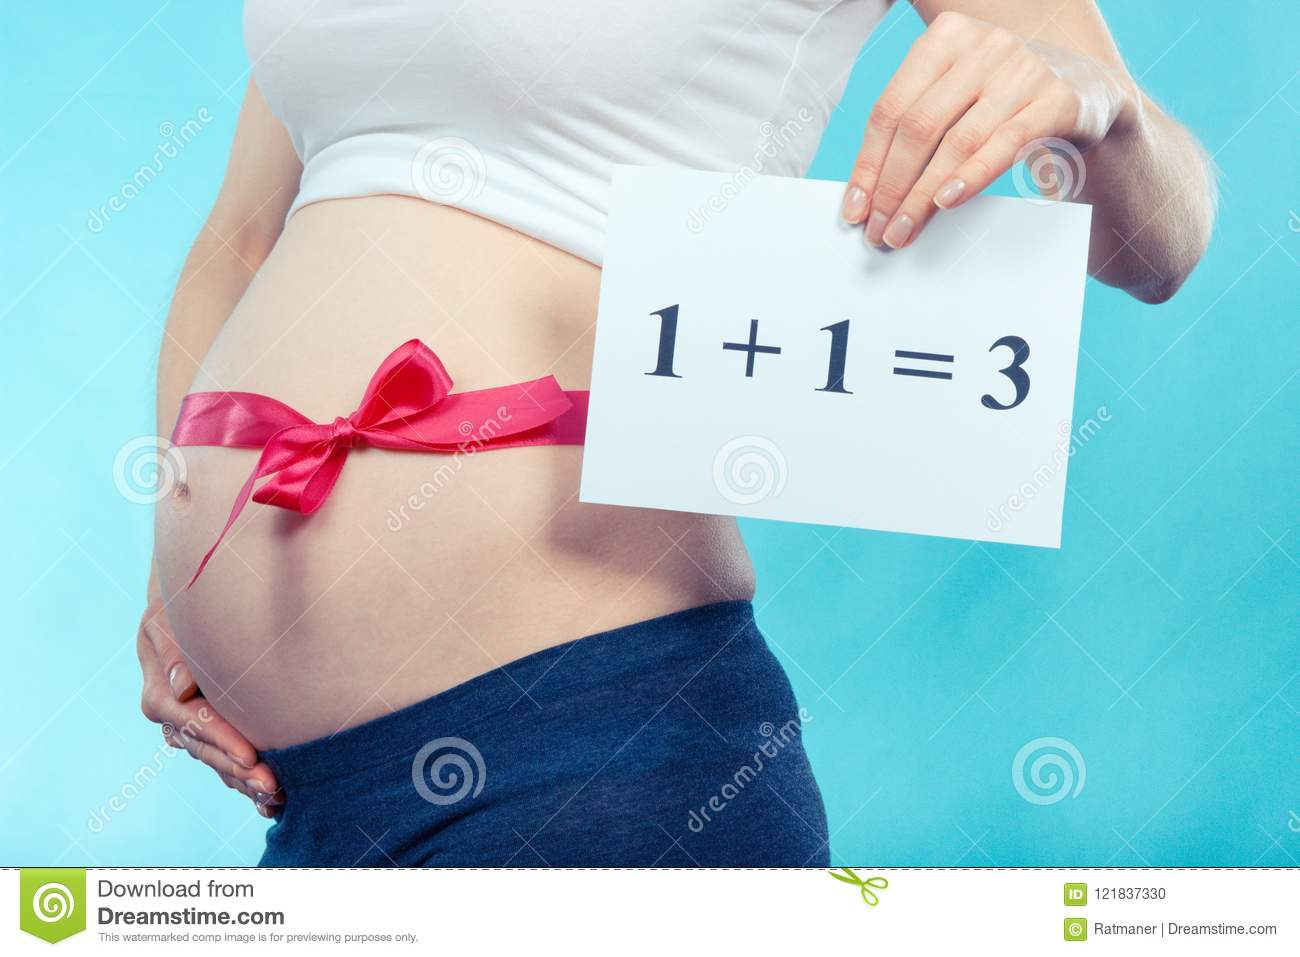 Vintage photo, Pregnant woman with pink ribbon on belly holding inscription 1+1=3, concept of extending family